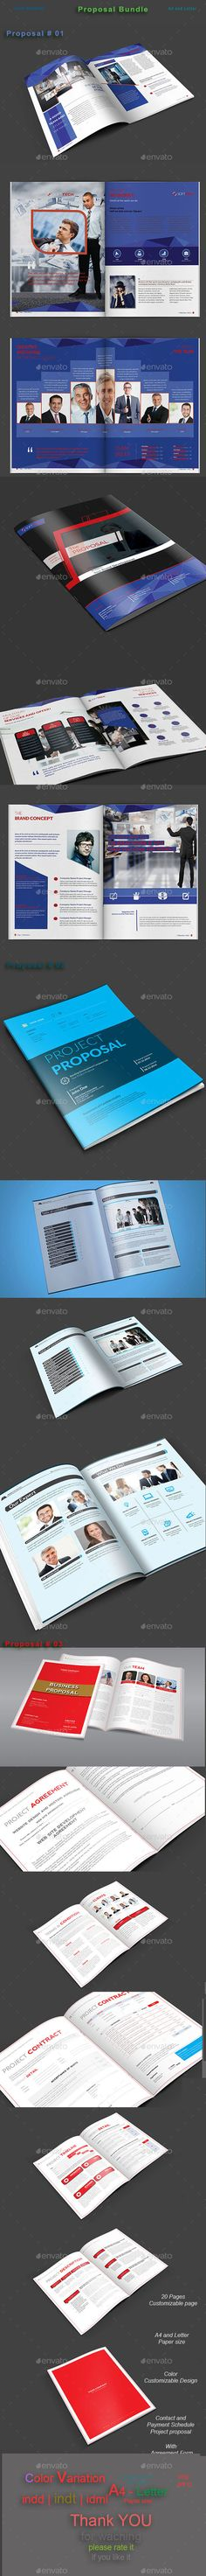 Invoices Template - Proposals \ Invoices StationeryDownload here - project proposal word template